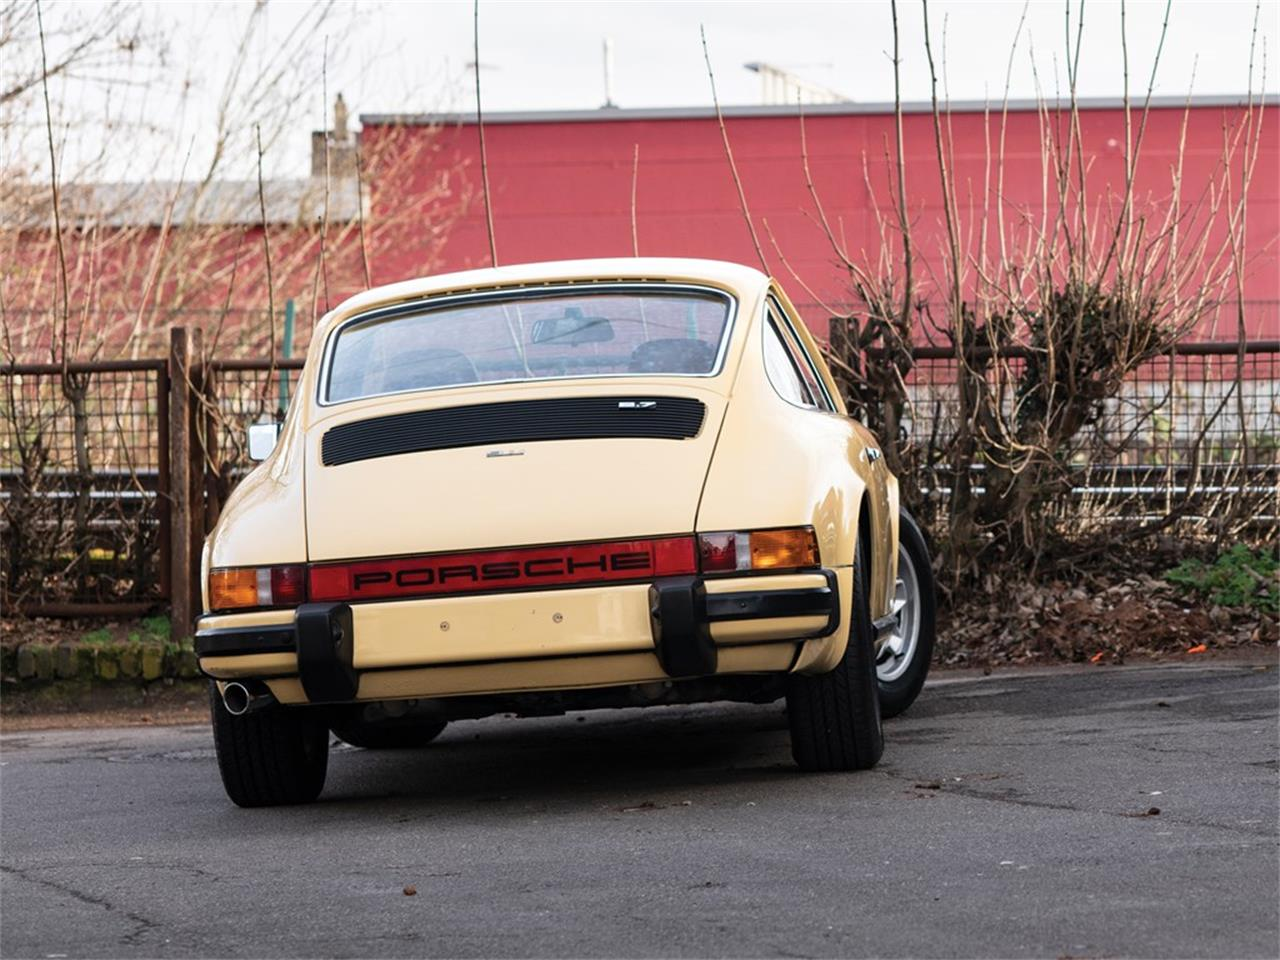 1974 Porsche 911 (CC-1319559) for sale in Essen, Germany